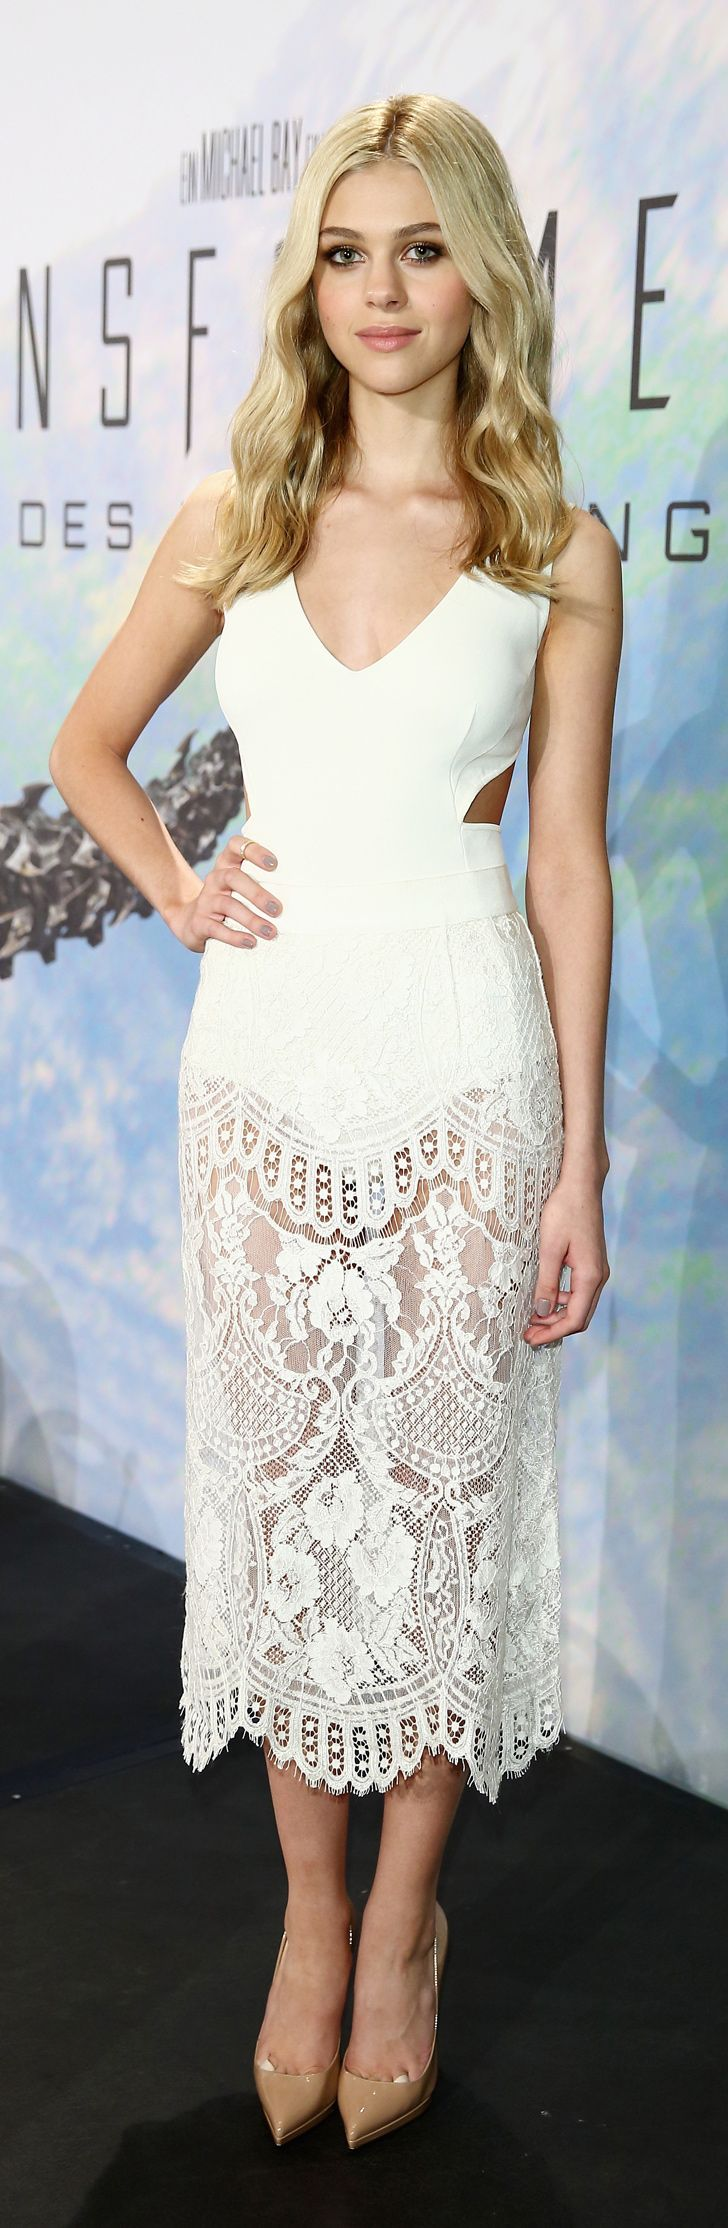 Nicola Peltz doubled down on cool, white Stella McCartney dresses when she wore her second of the week to the Berlin Transformers: Age of Extinction press conference.